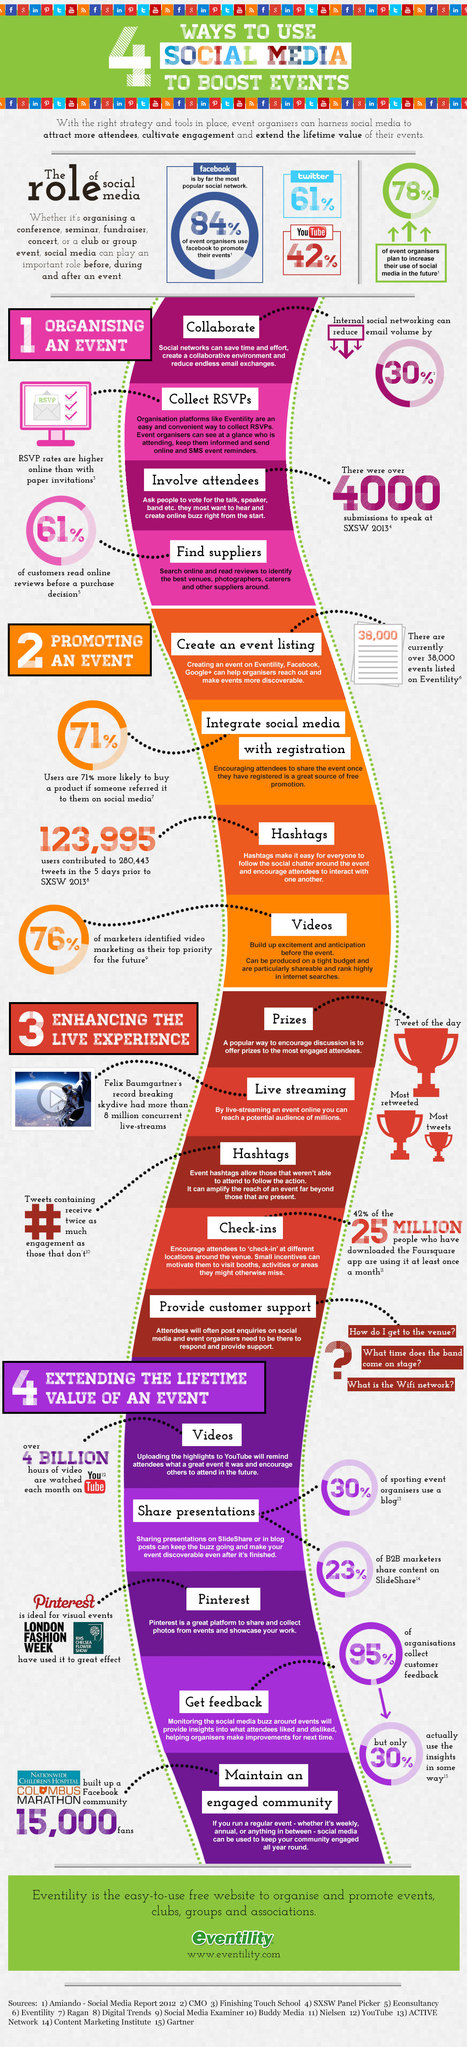 Social media for events [Infographic] | Time to Learn | Scoop.it